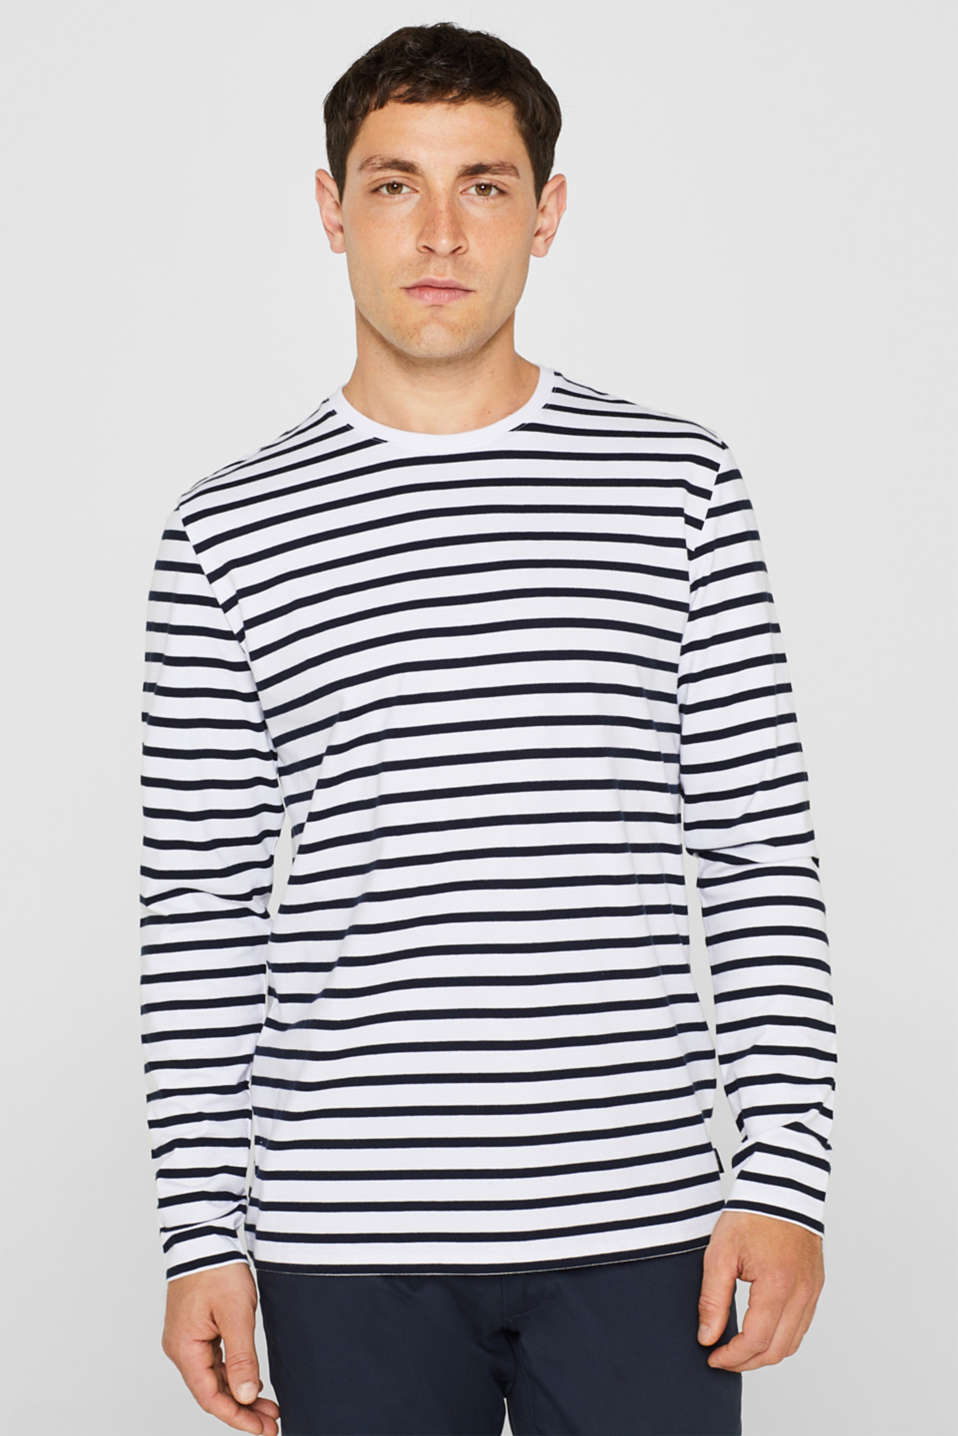 Esprit - Jersey long sleeve top, 100% cotton